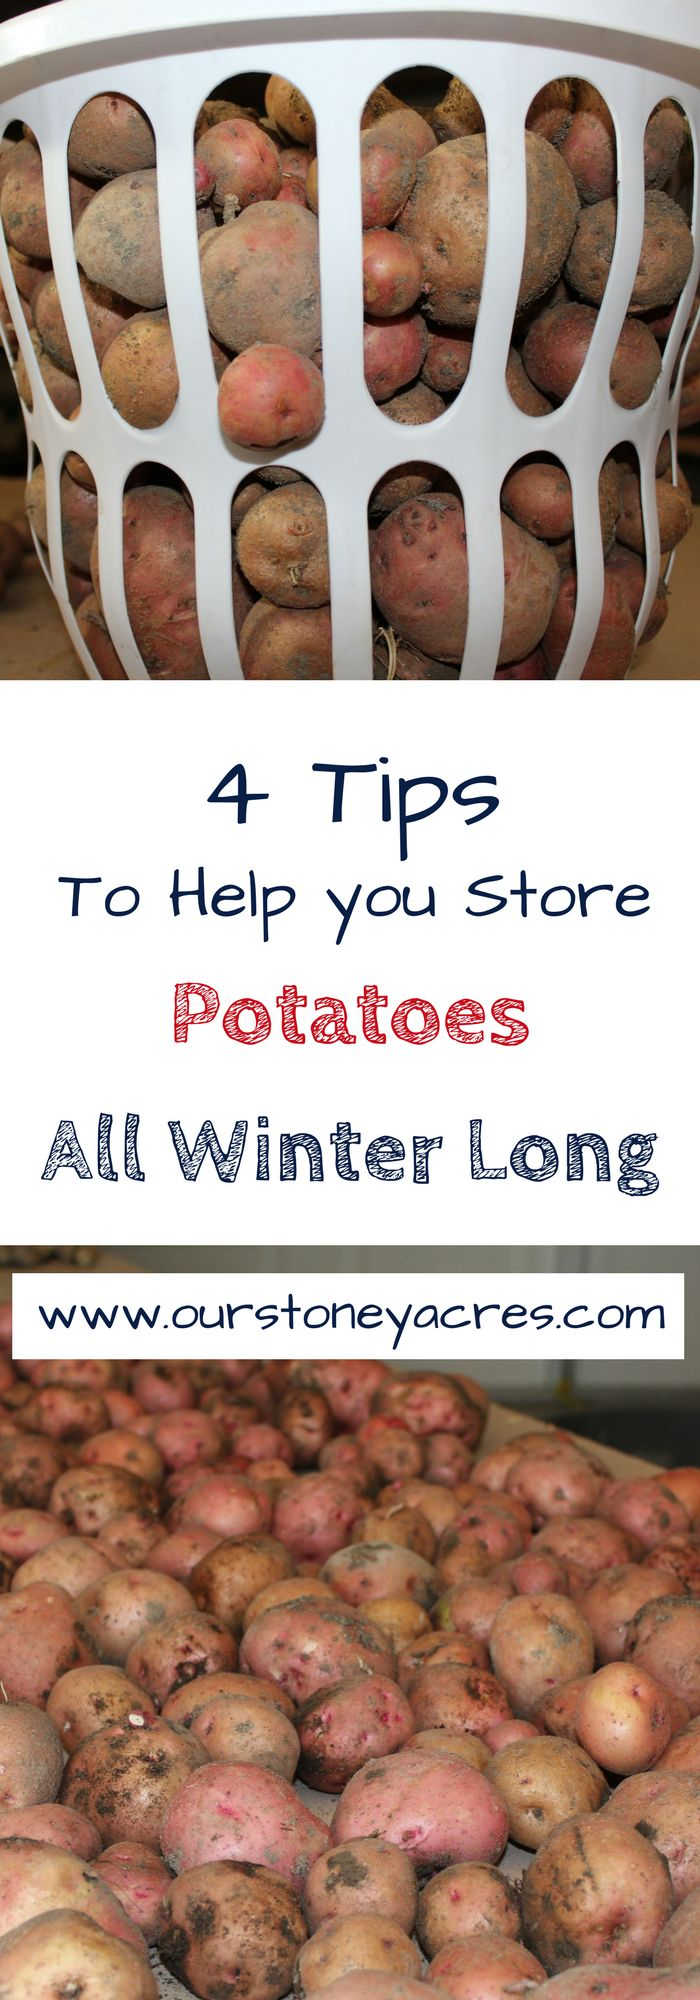 Storing Potatoes. Storing potatoes properly is an important part of our gardening. We grow a lot of potatoes (some years over 250 pounds) so it is important that we keep those potatoes lasting as long as possible in our winter storage.